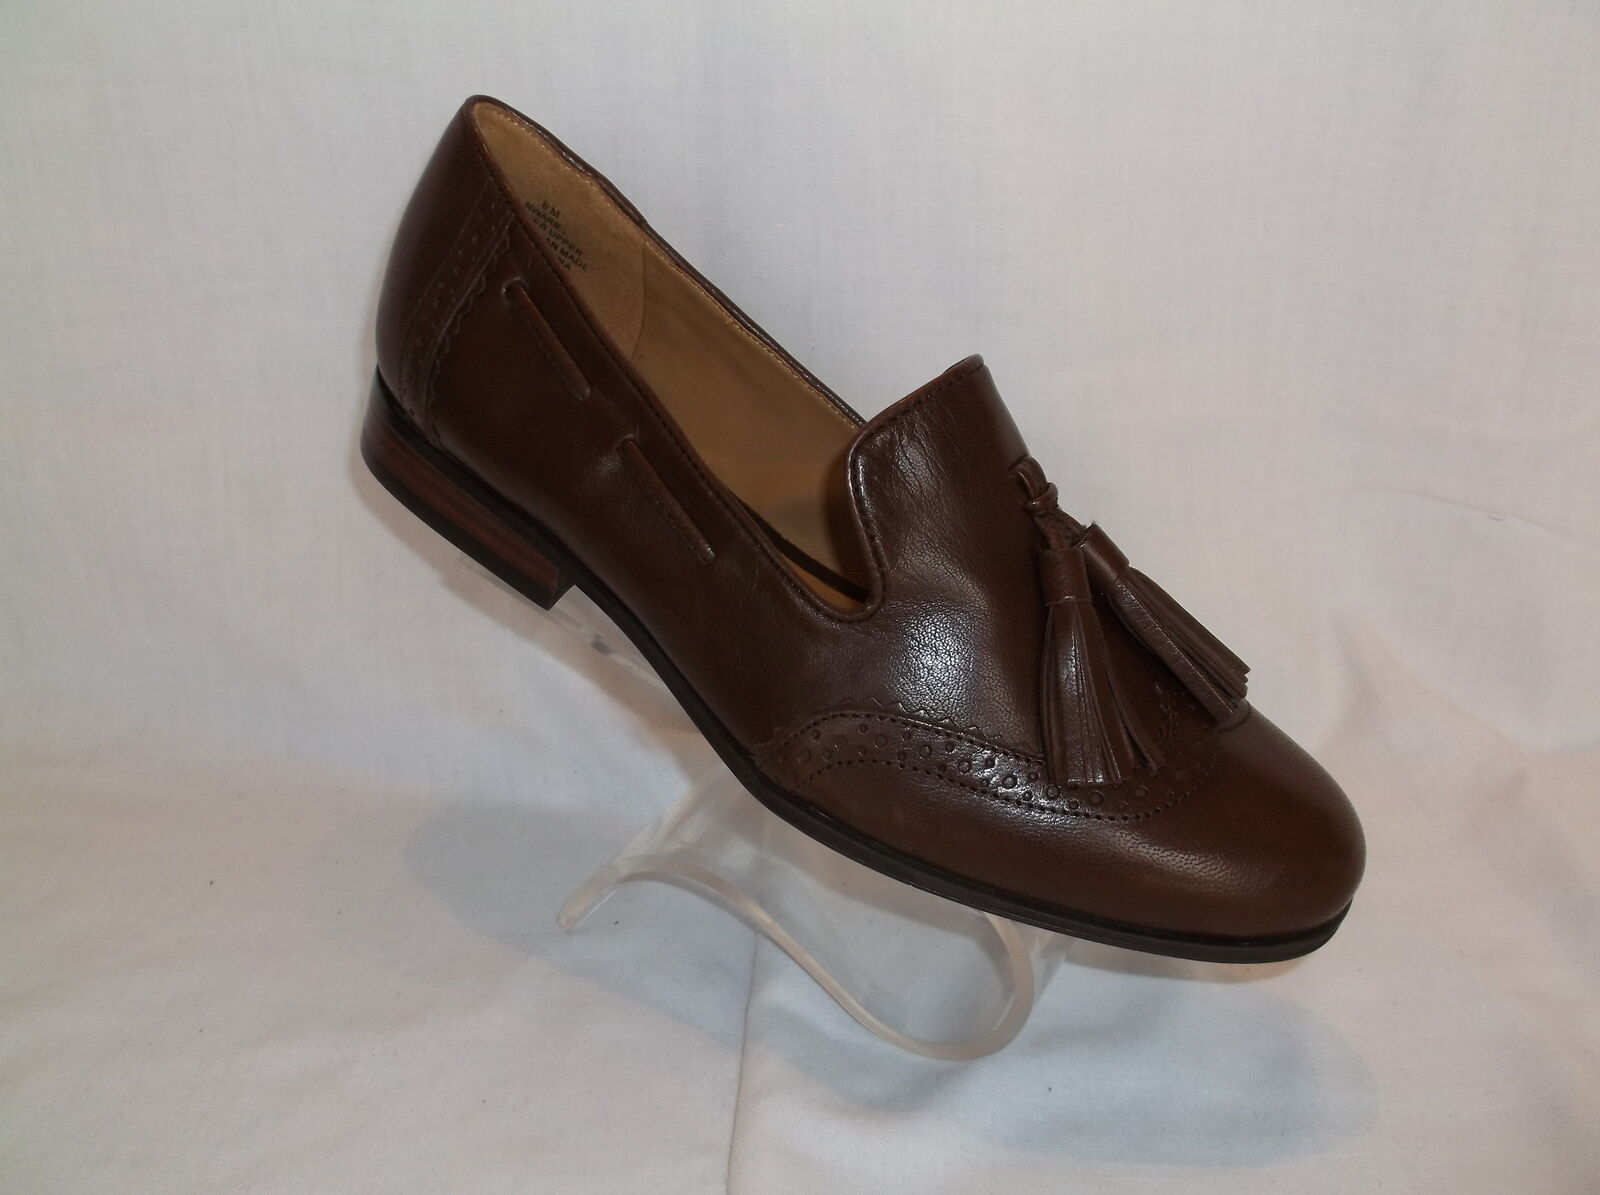 NINE (ARIEL) WEST BROWN  LEATHER LOAFER SIZE 6  NEU IN BOX,